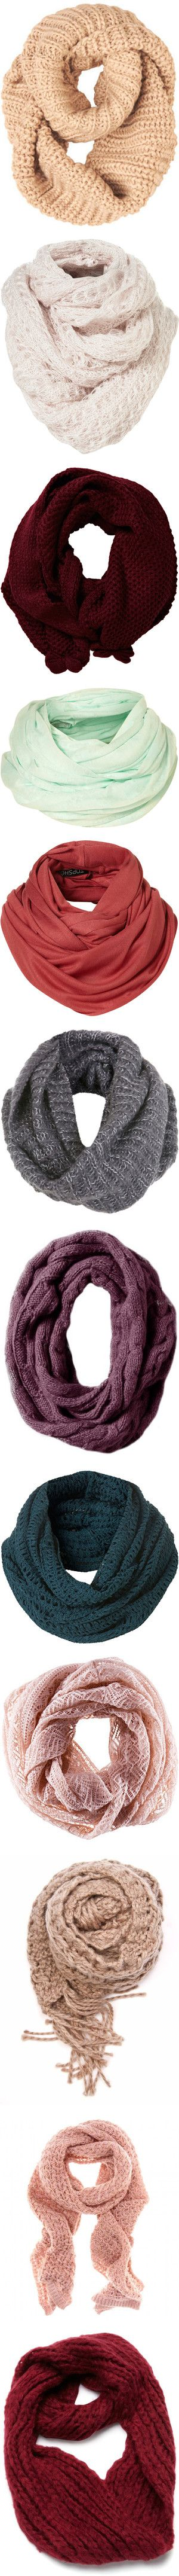 Seriously loving the infinity scarf right now!